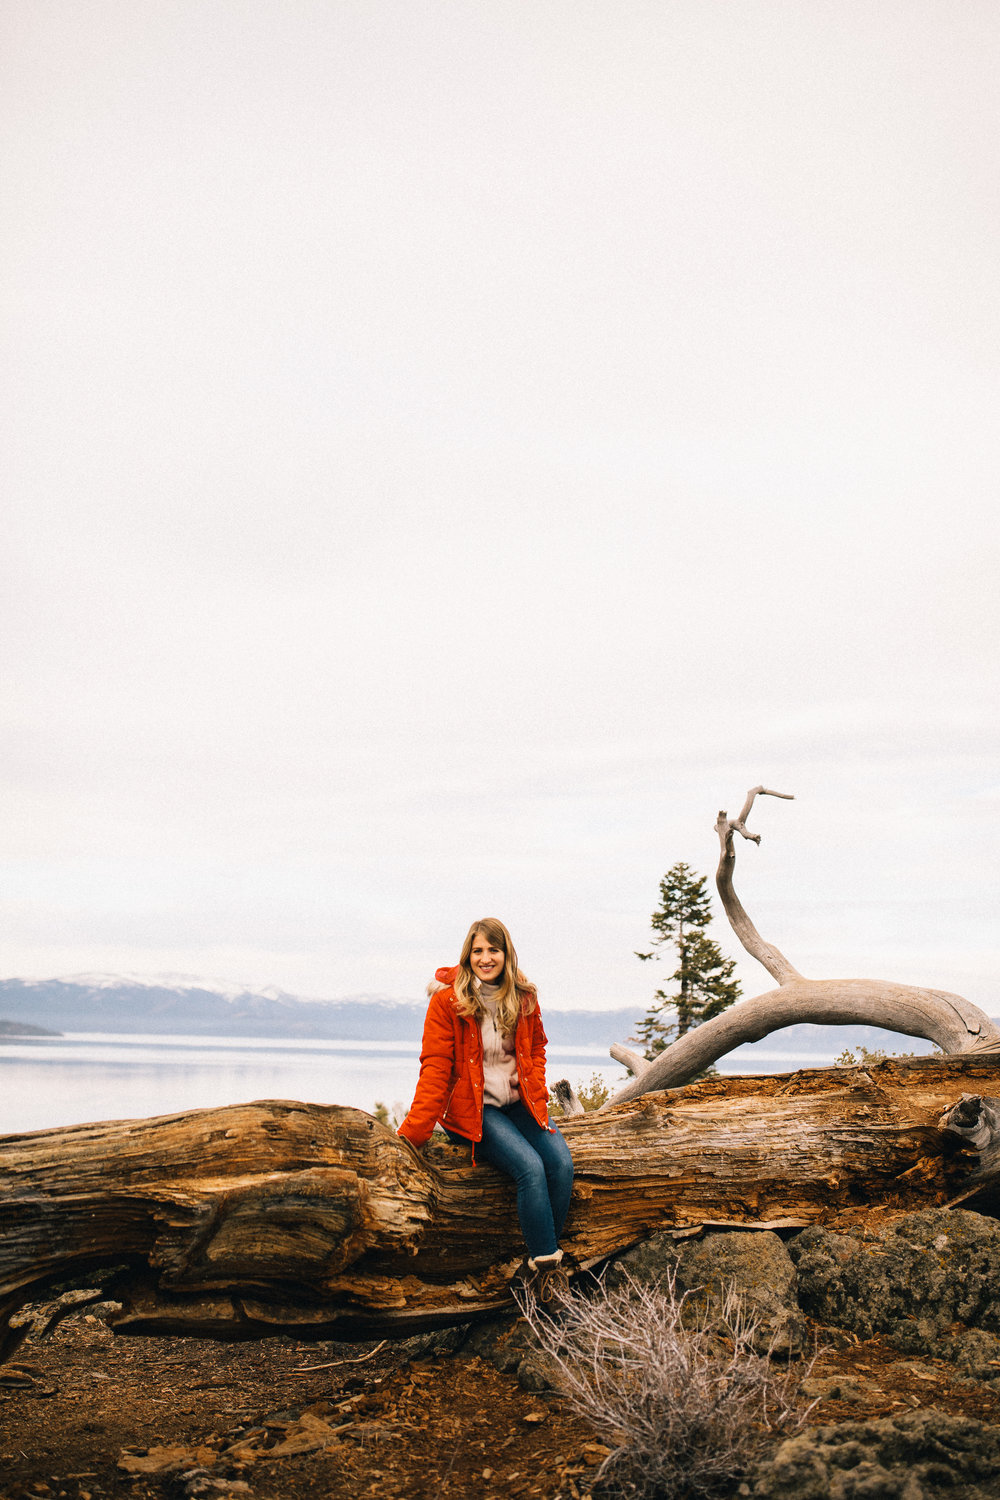 2018_01_01 Tahoe Trip 2018 Edited Full Resolution 0044.jpg